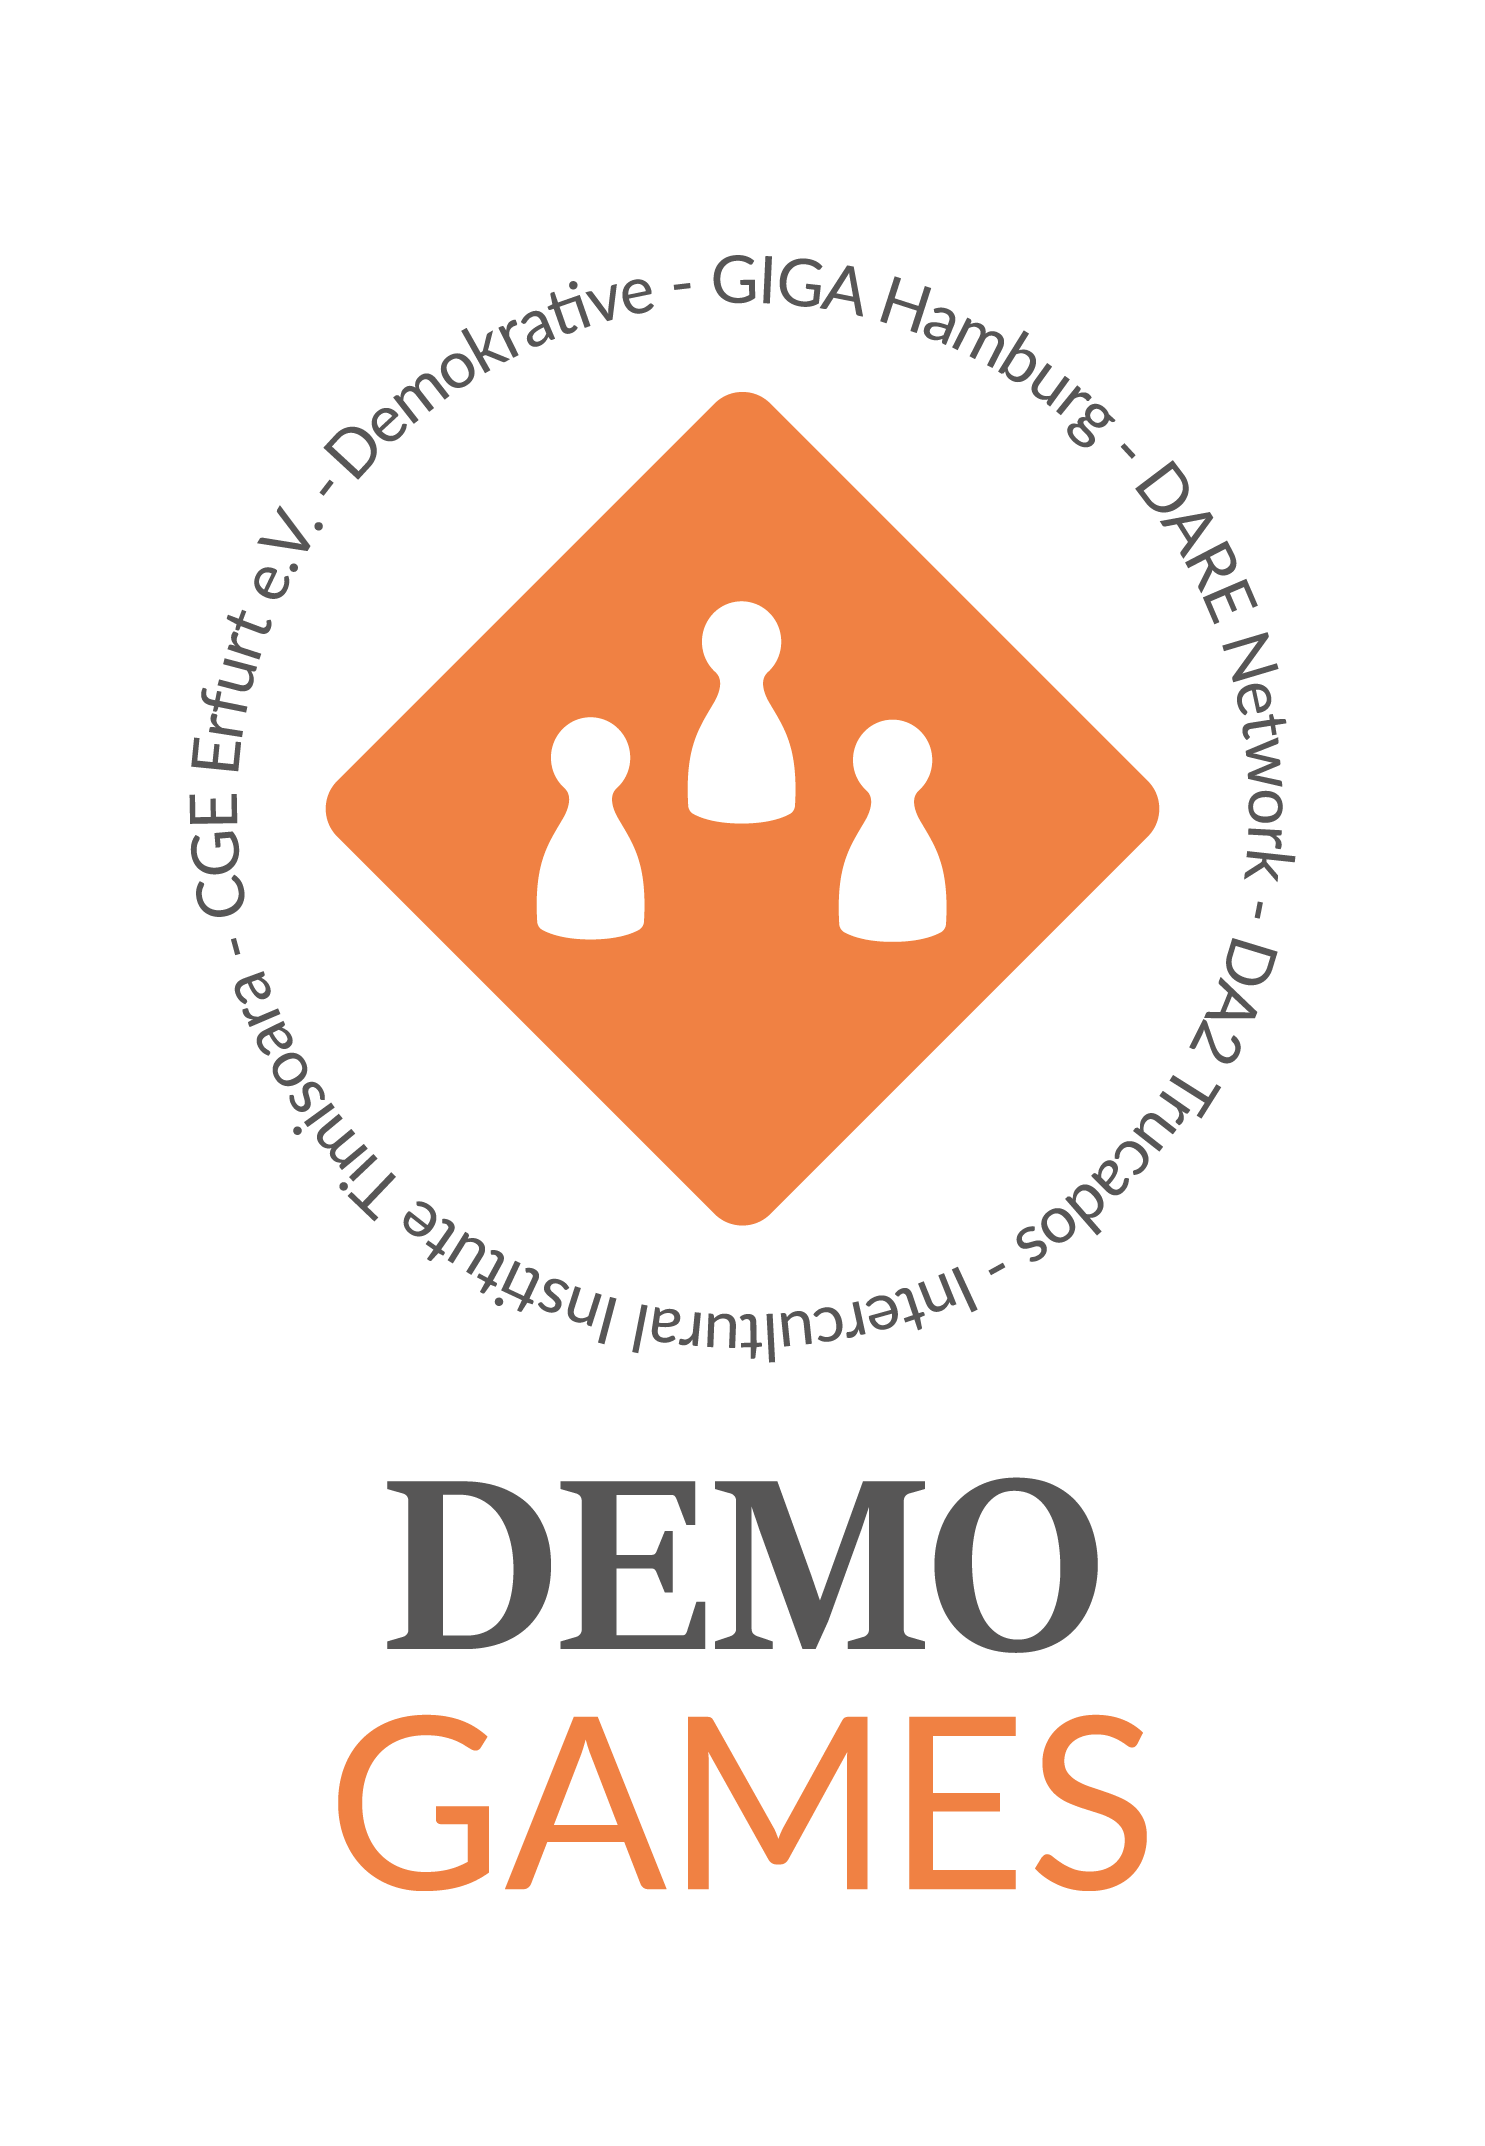 DEMOGAMES LOGO TRANSPARENT